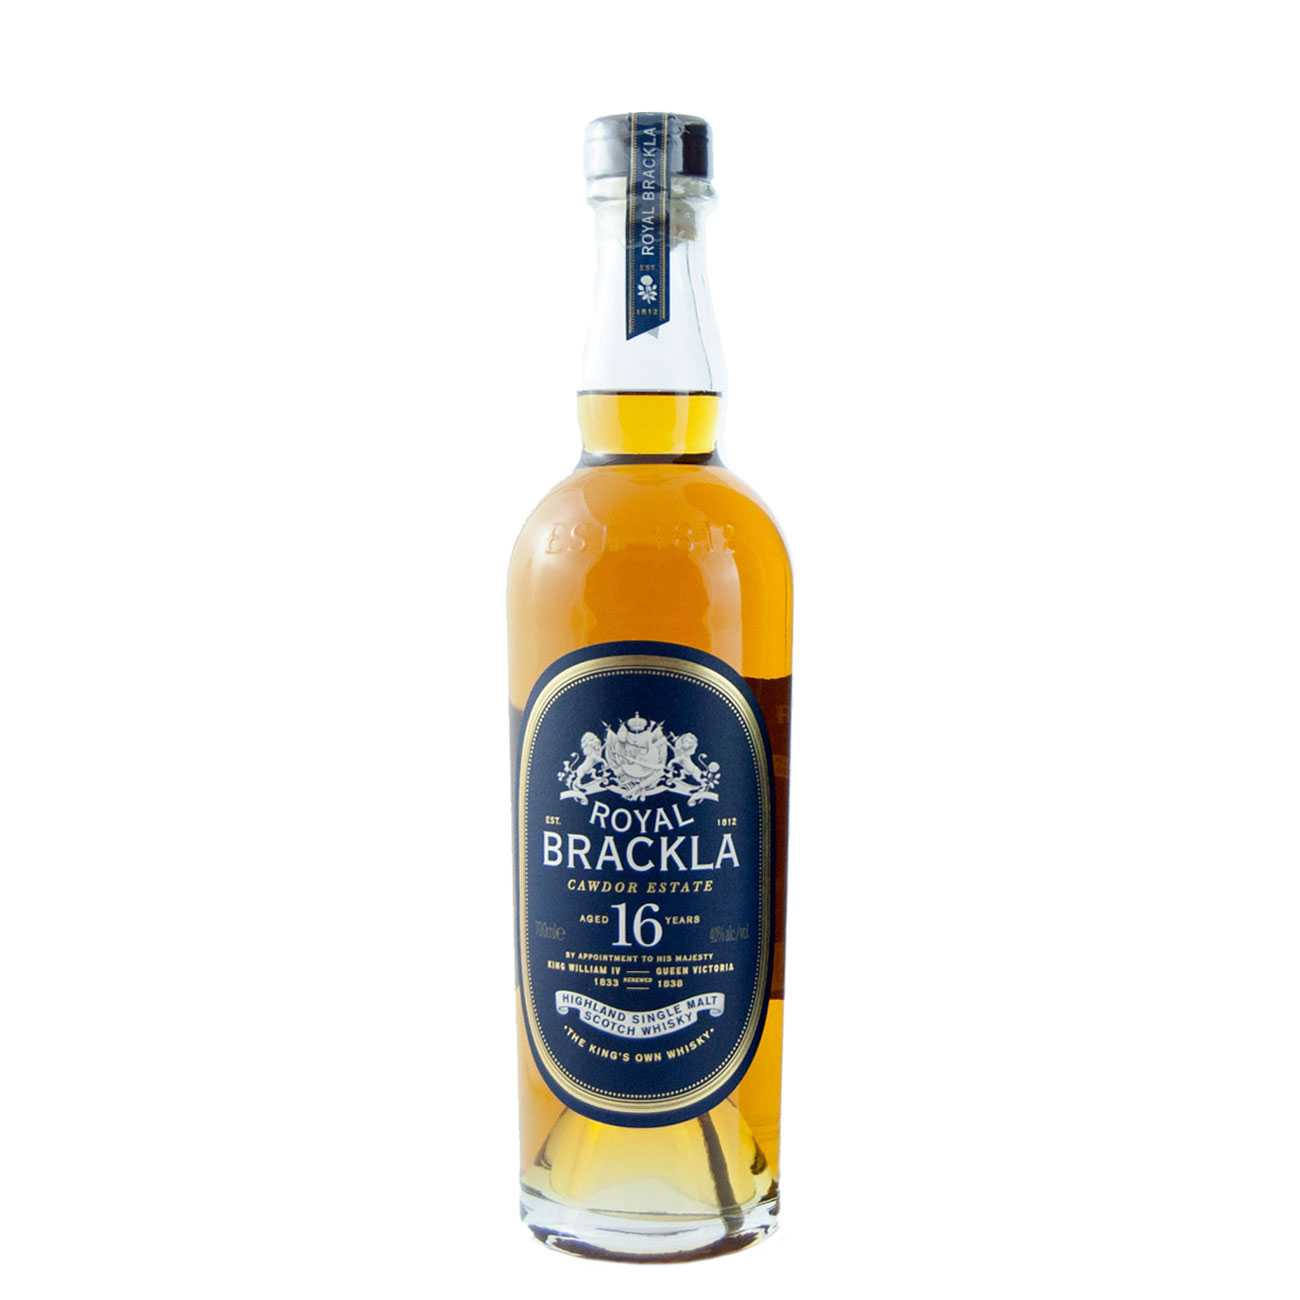 Whisky scotian, 16 YEARS 700 ML, Royal Brackla